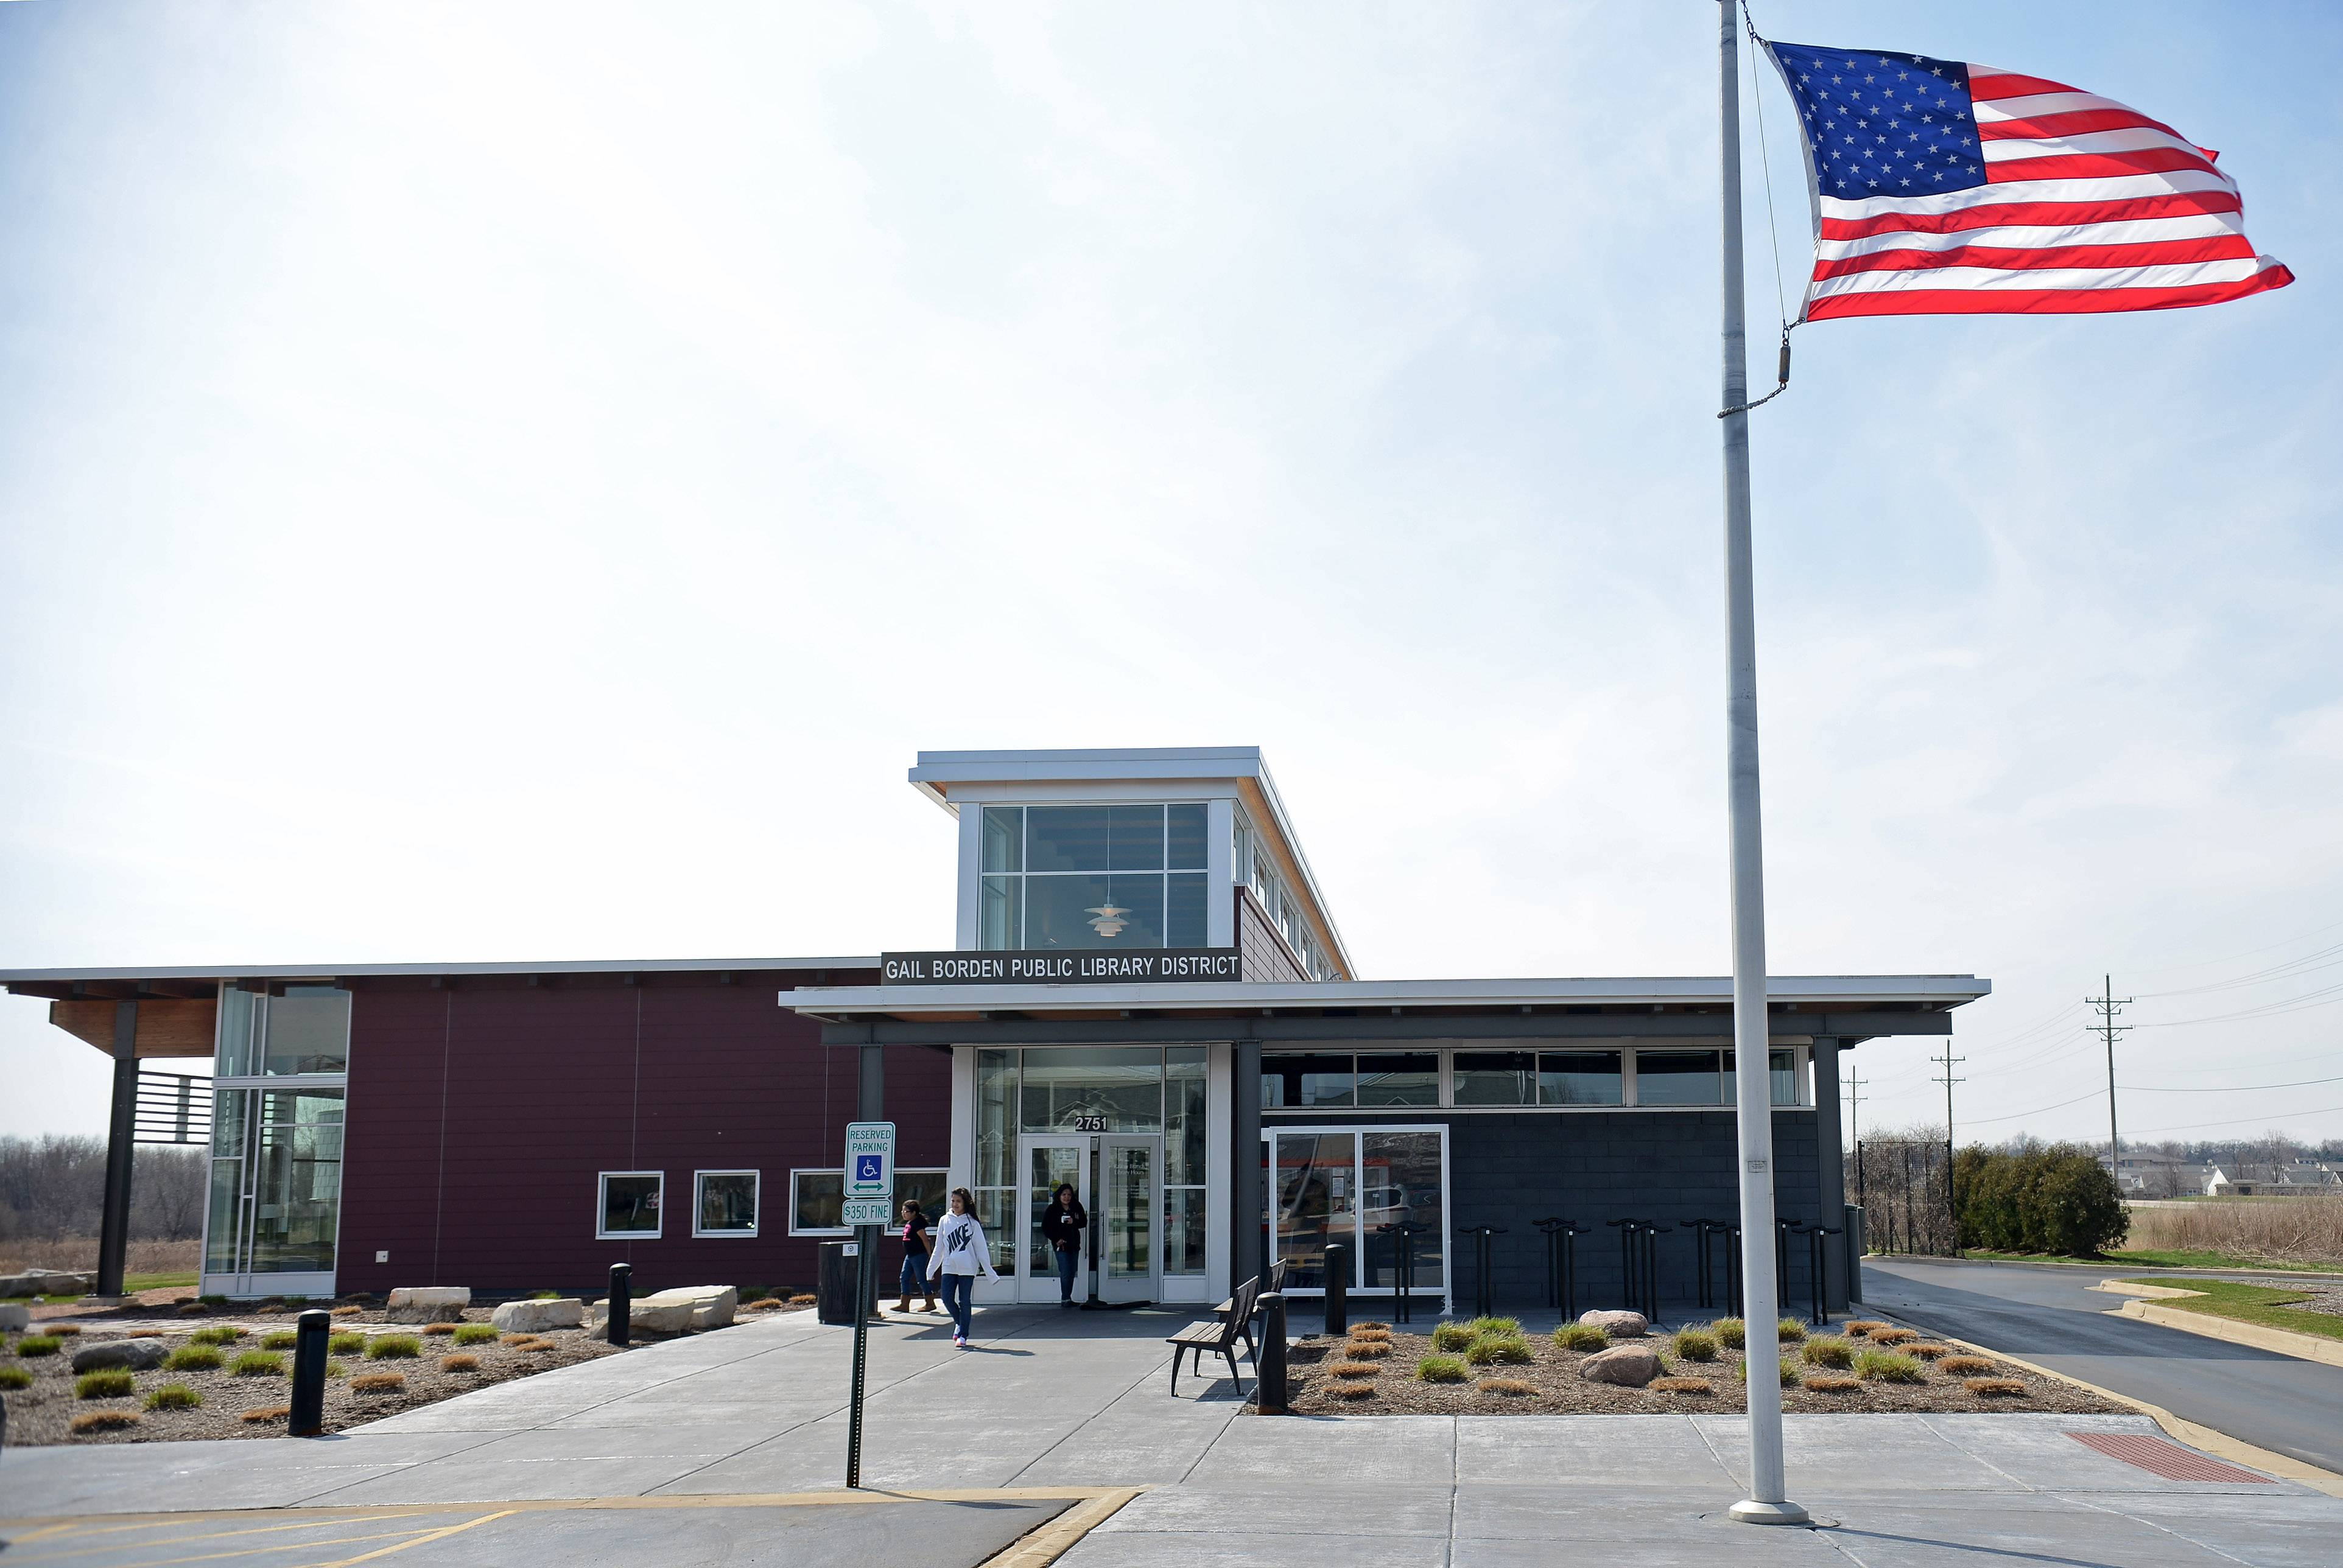 The Gail Borden Public Library board will likely place a referendum question on the November ballot asking residents in unserved areas next to the western edge of the district if they want to become taxpaying district members. Pictured here is the library's Rakow branch at 2751 W. Bowes Road, Elgin.